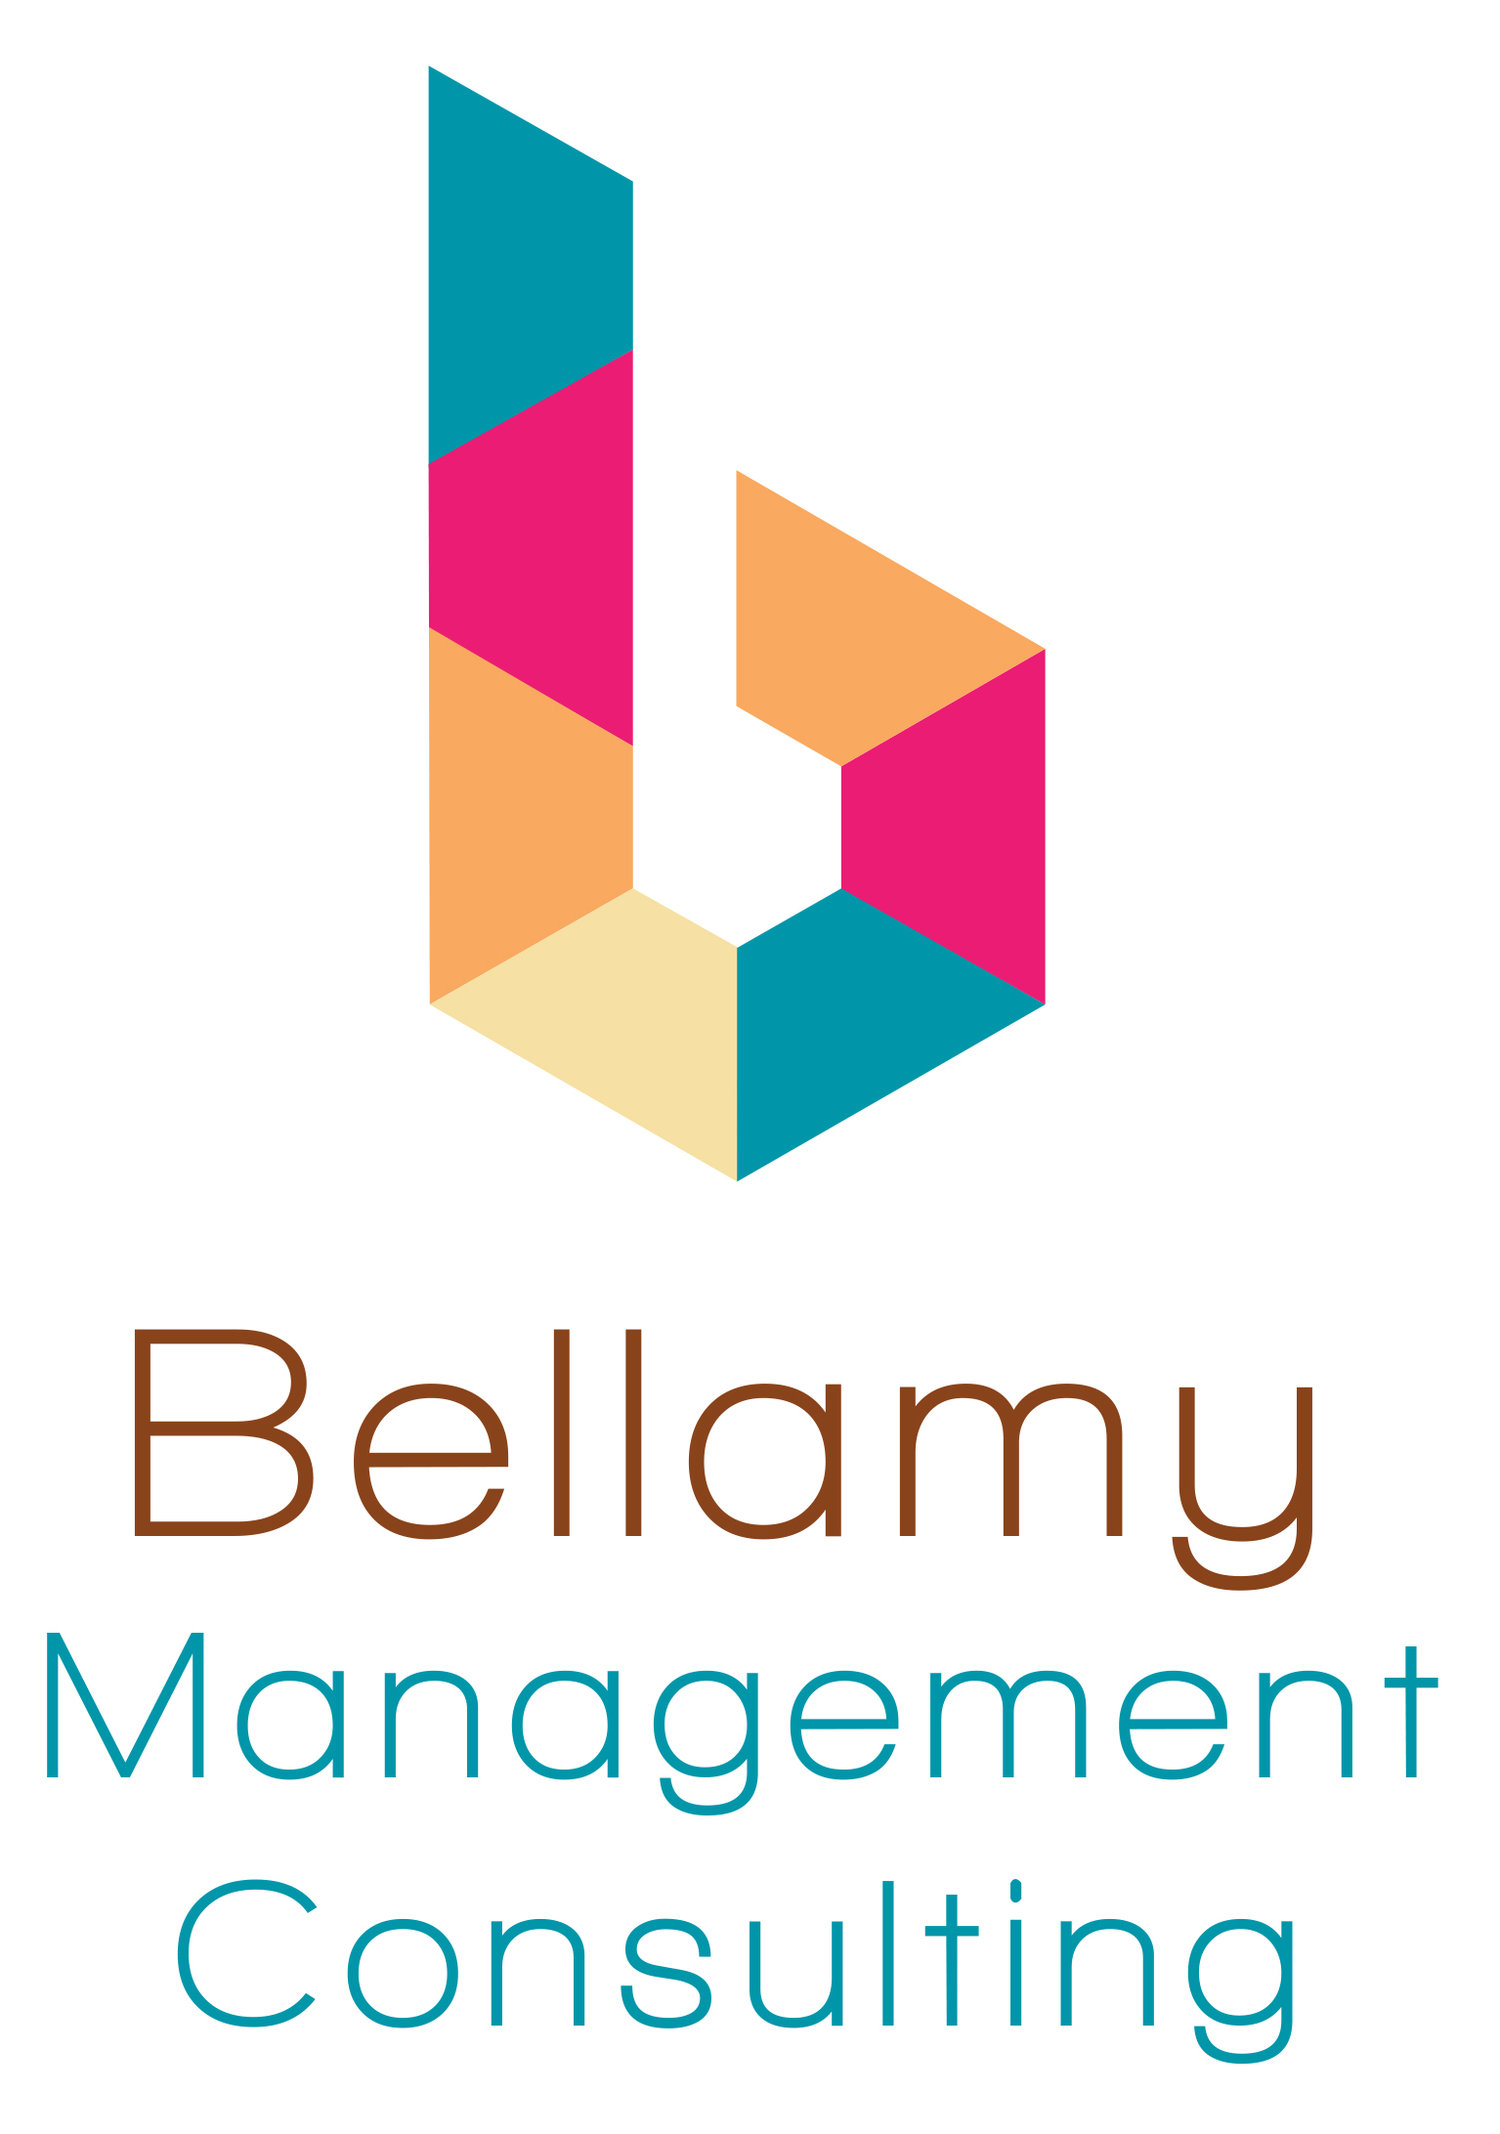 Bellamy Management Consulting